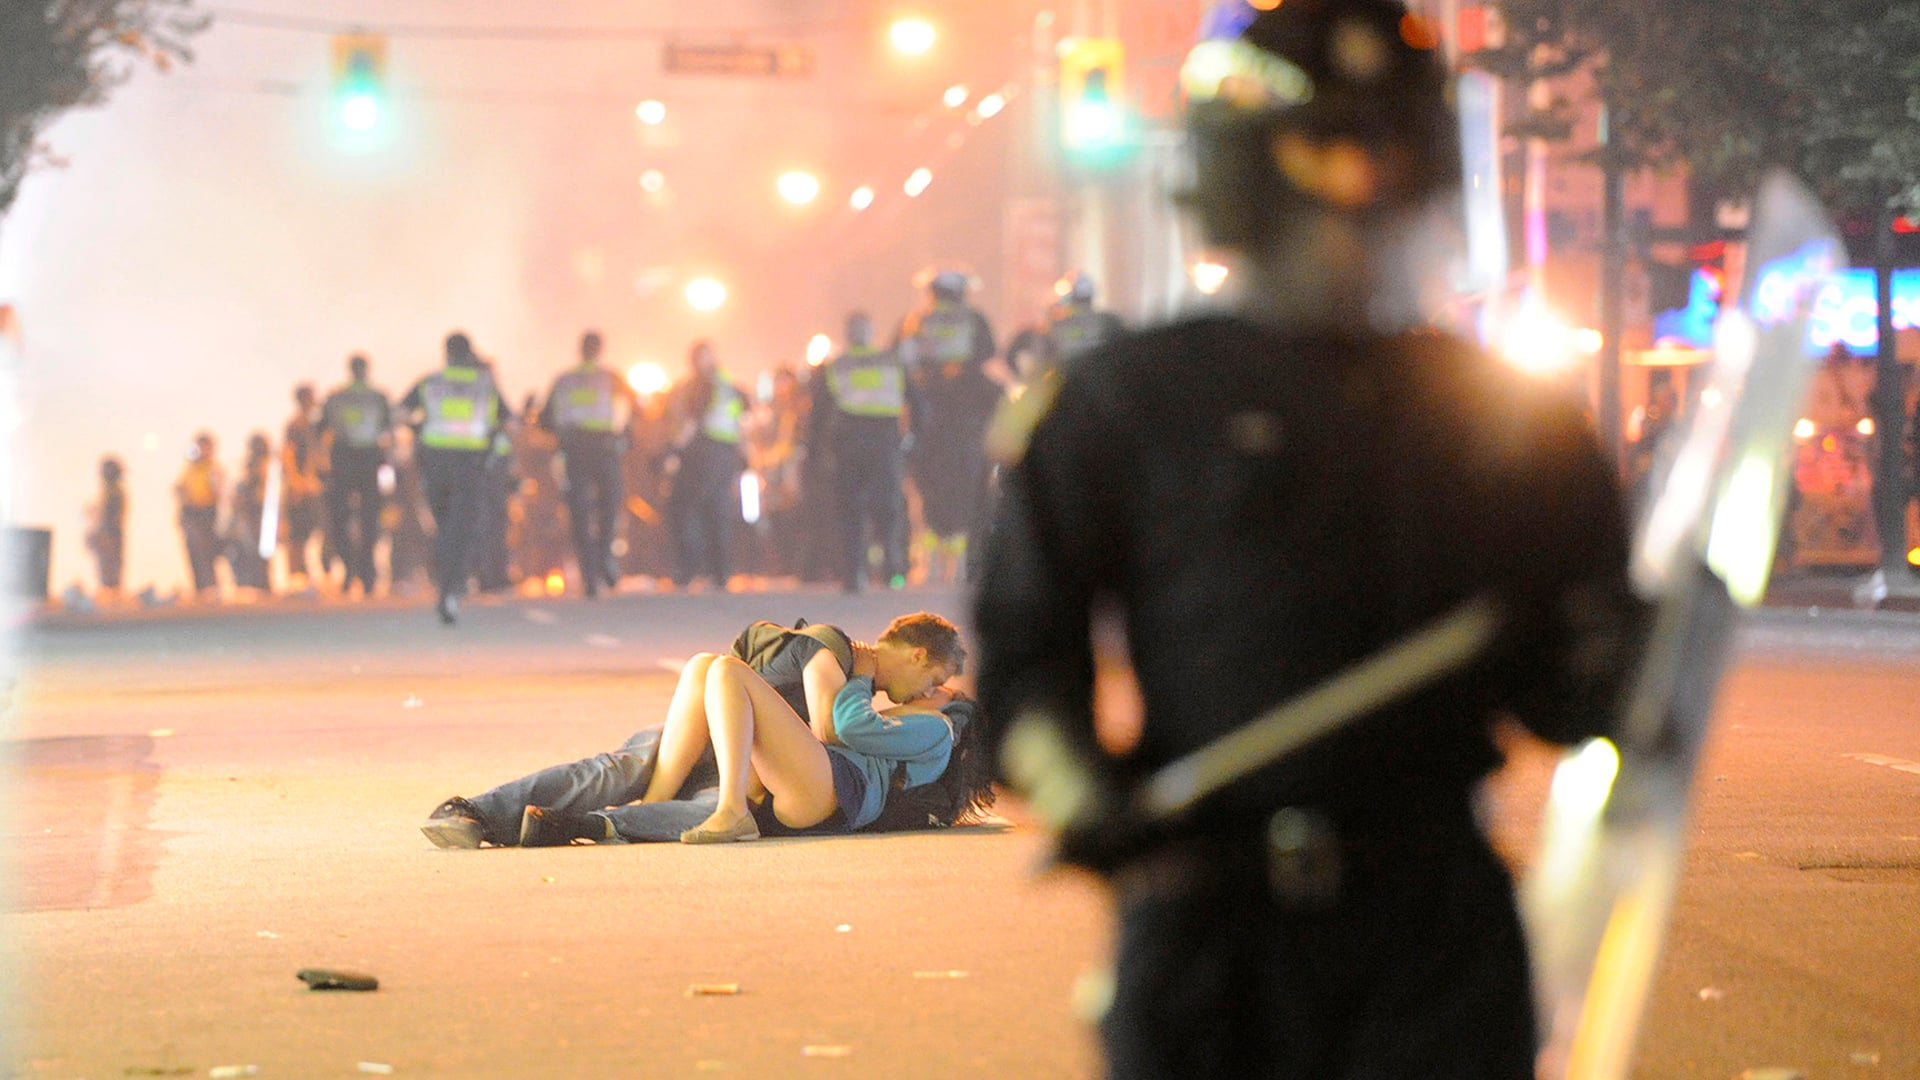 Vancouver's Stanley Cup riots, 10 years later